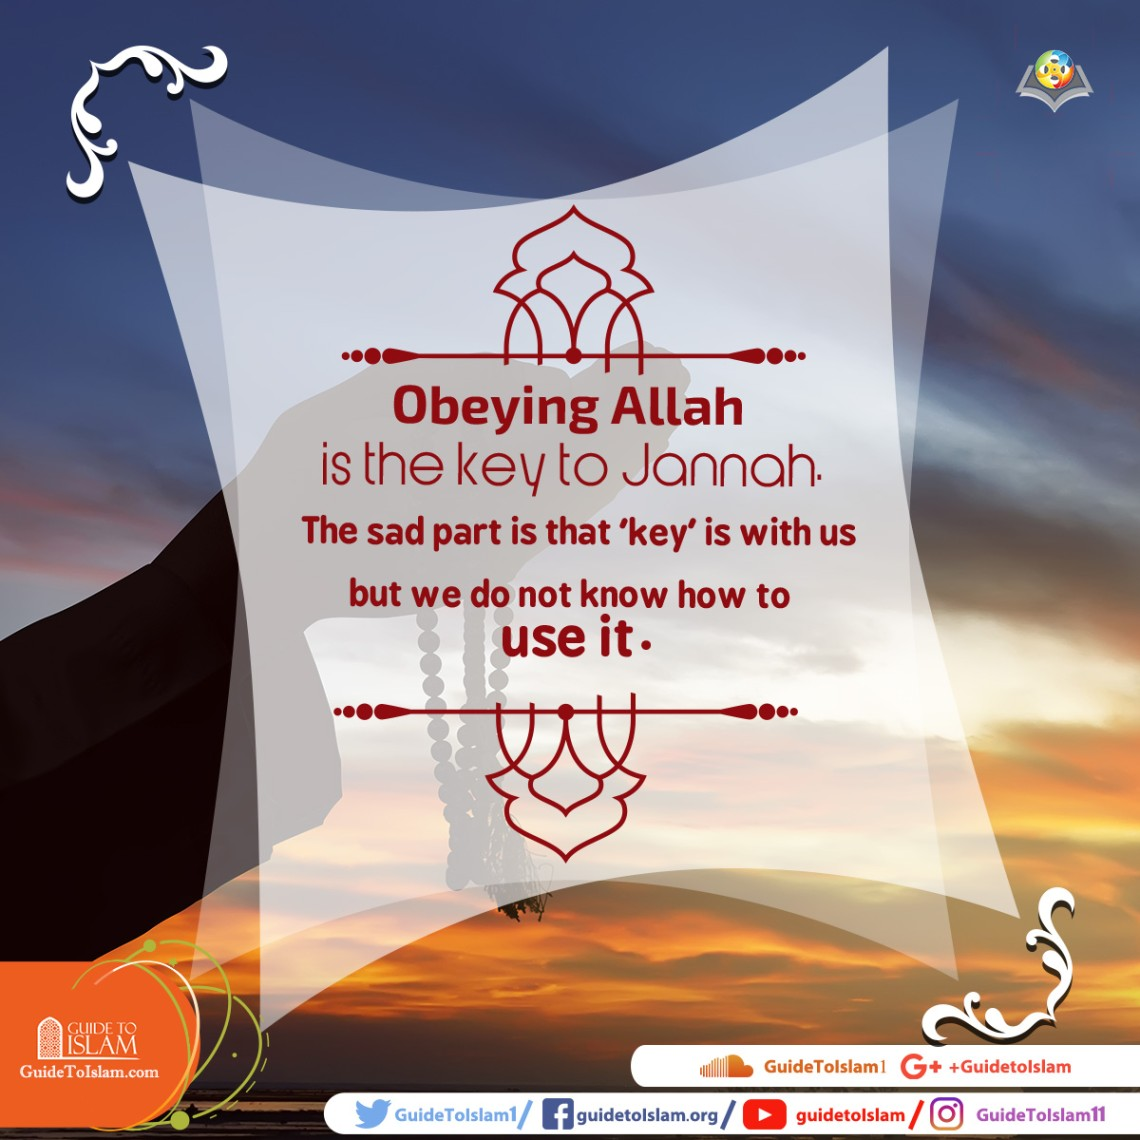 Obeying Allah is the key to Jannah